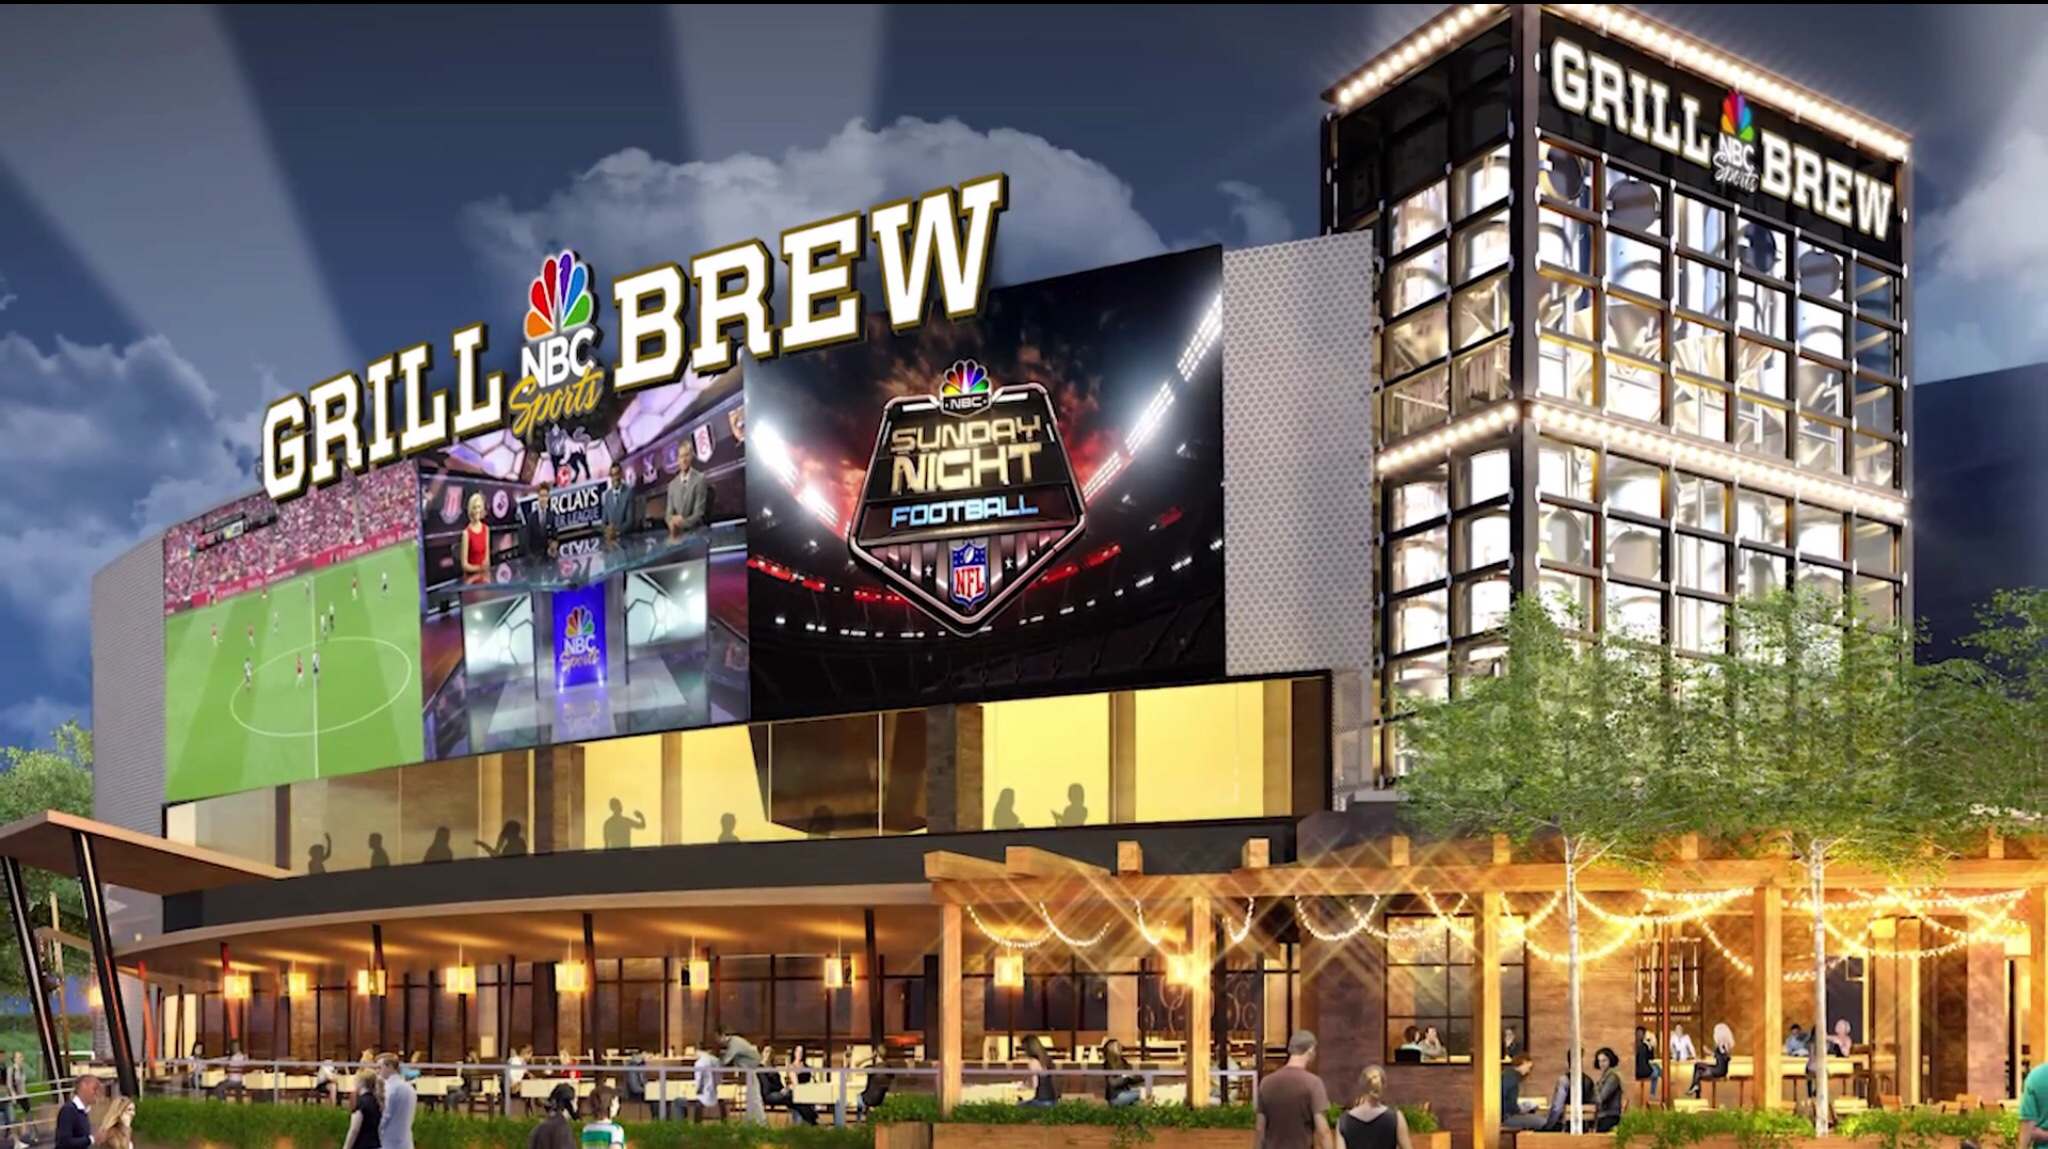 NBC Sports Grill & Brew Citywalk